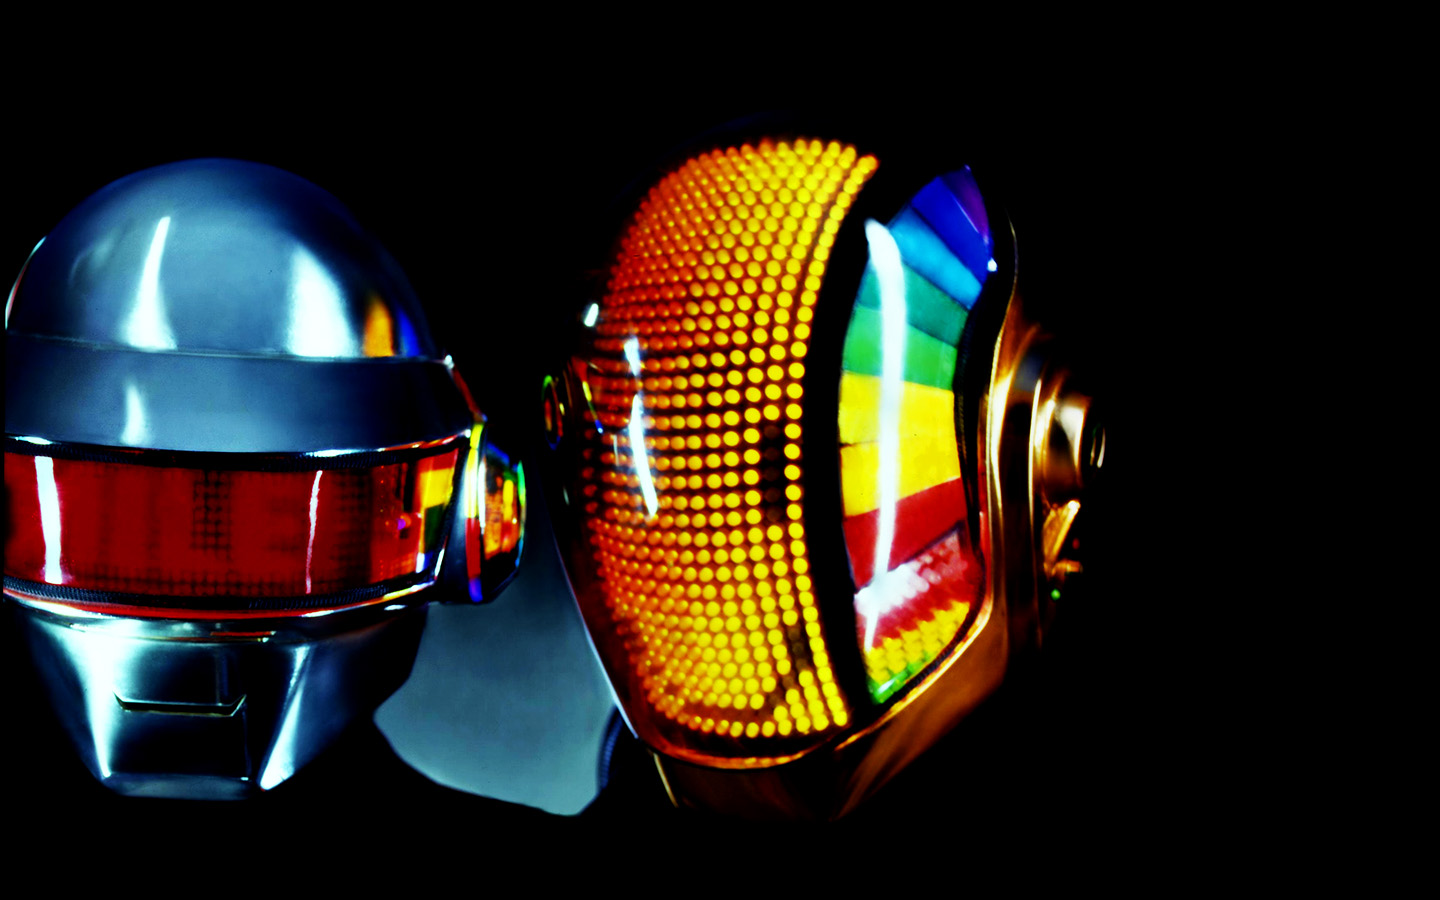 Daft Punk Wallpaper HD